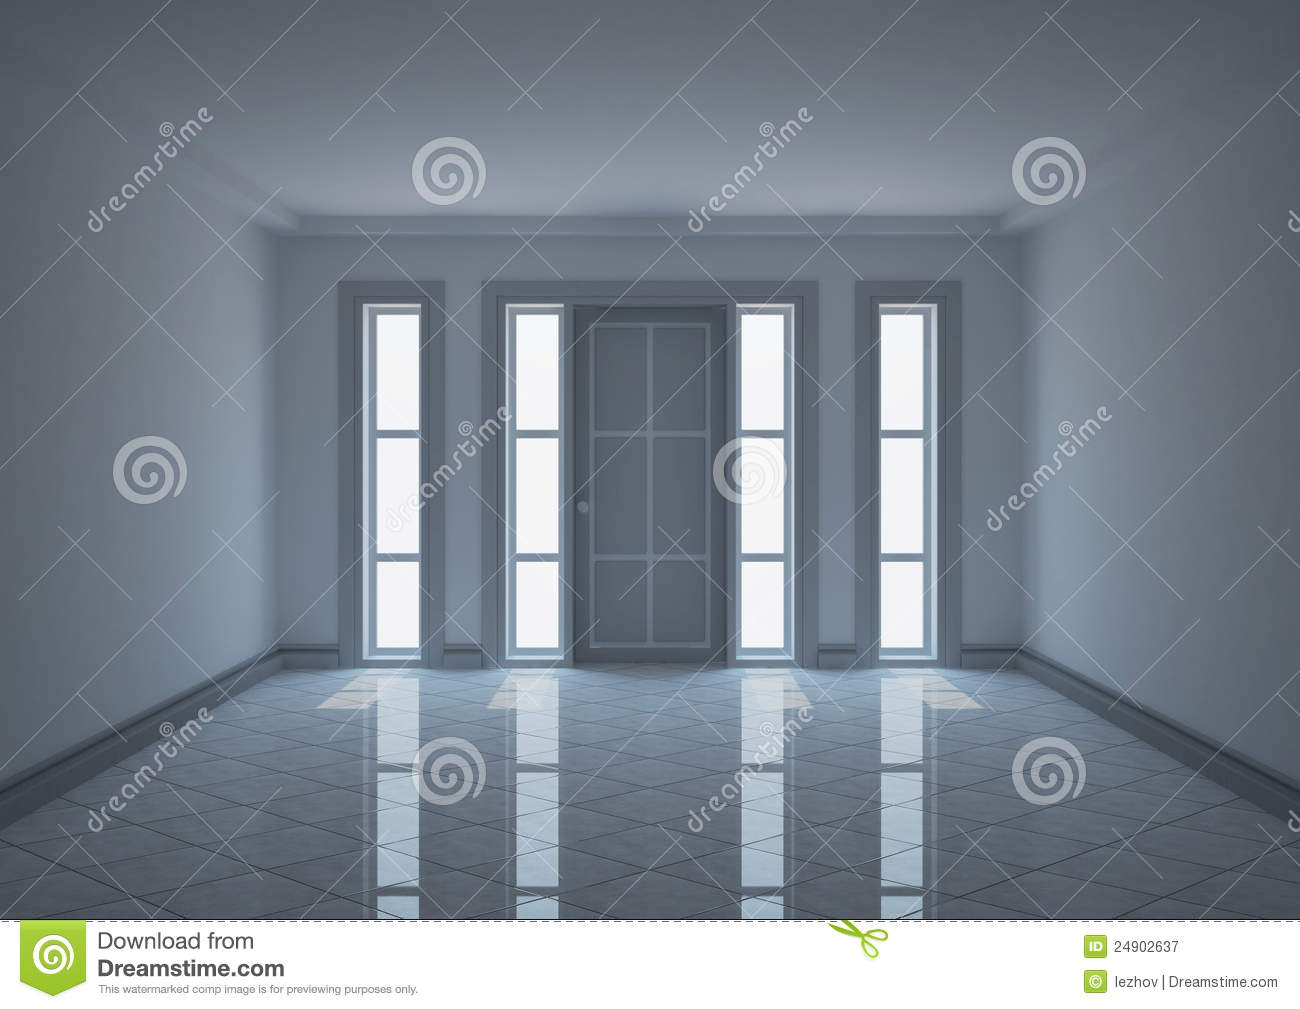 Empty Entrance Hall With Narrow Windows Royalty Free Stock